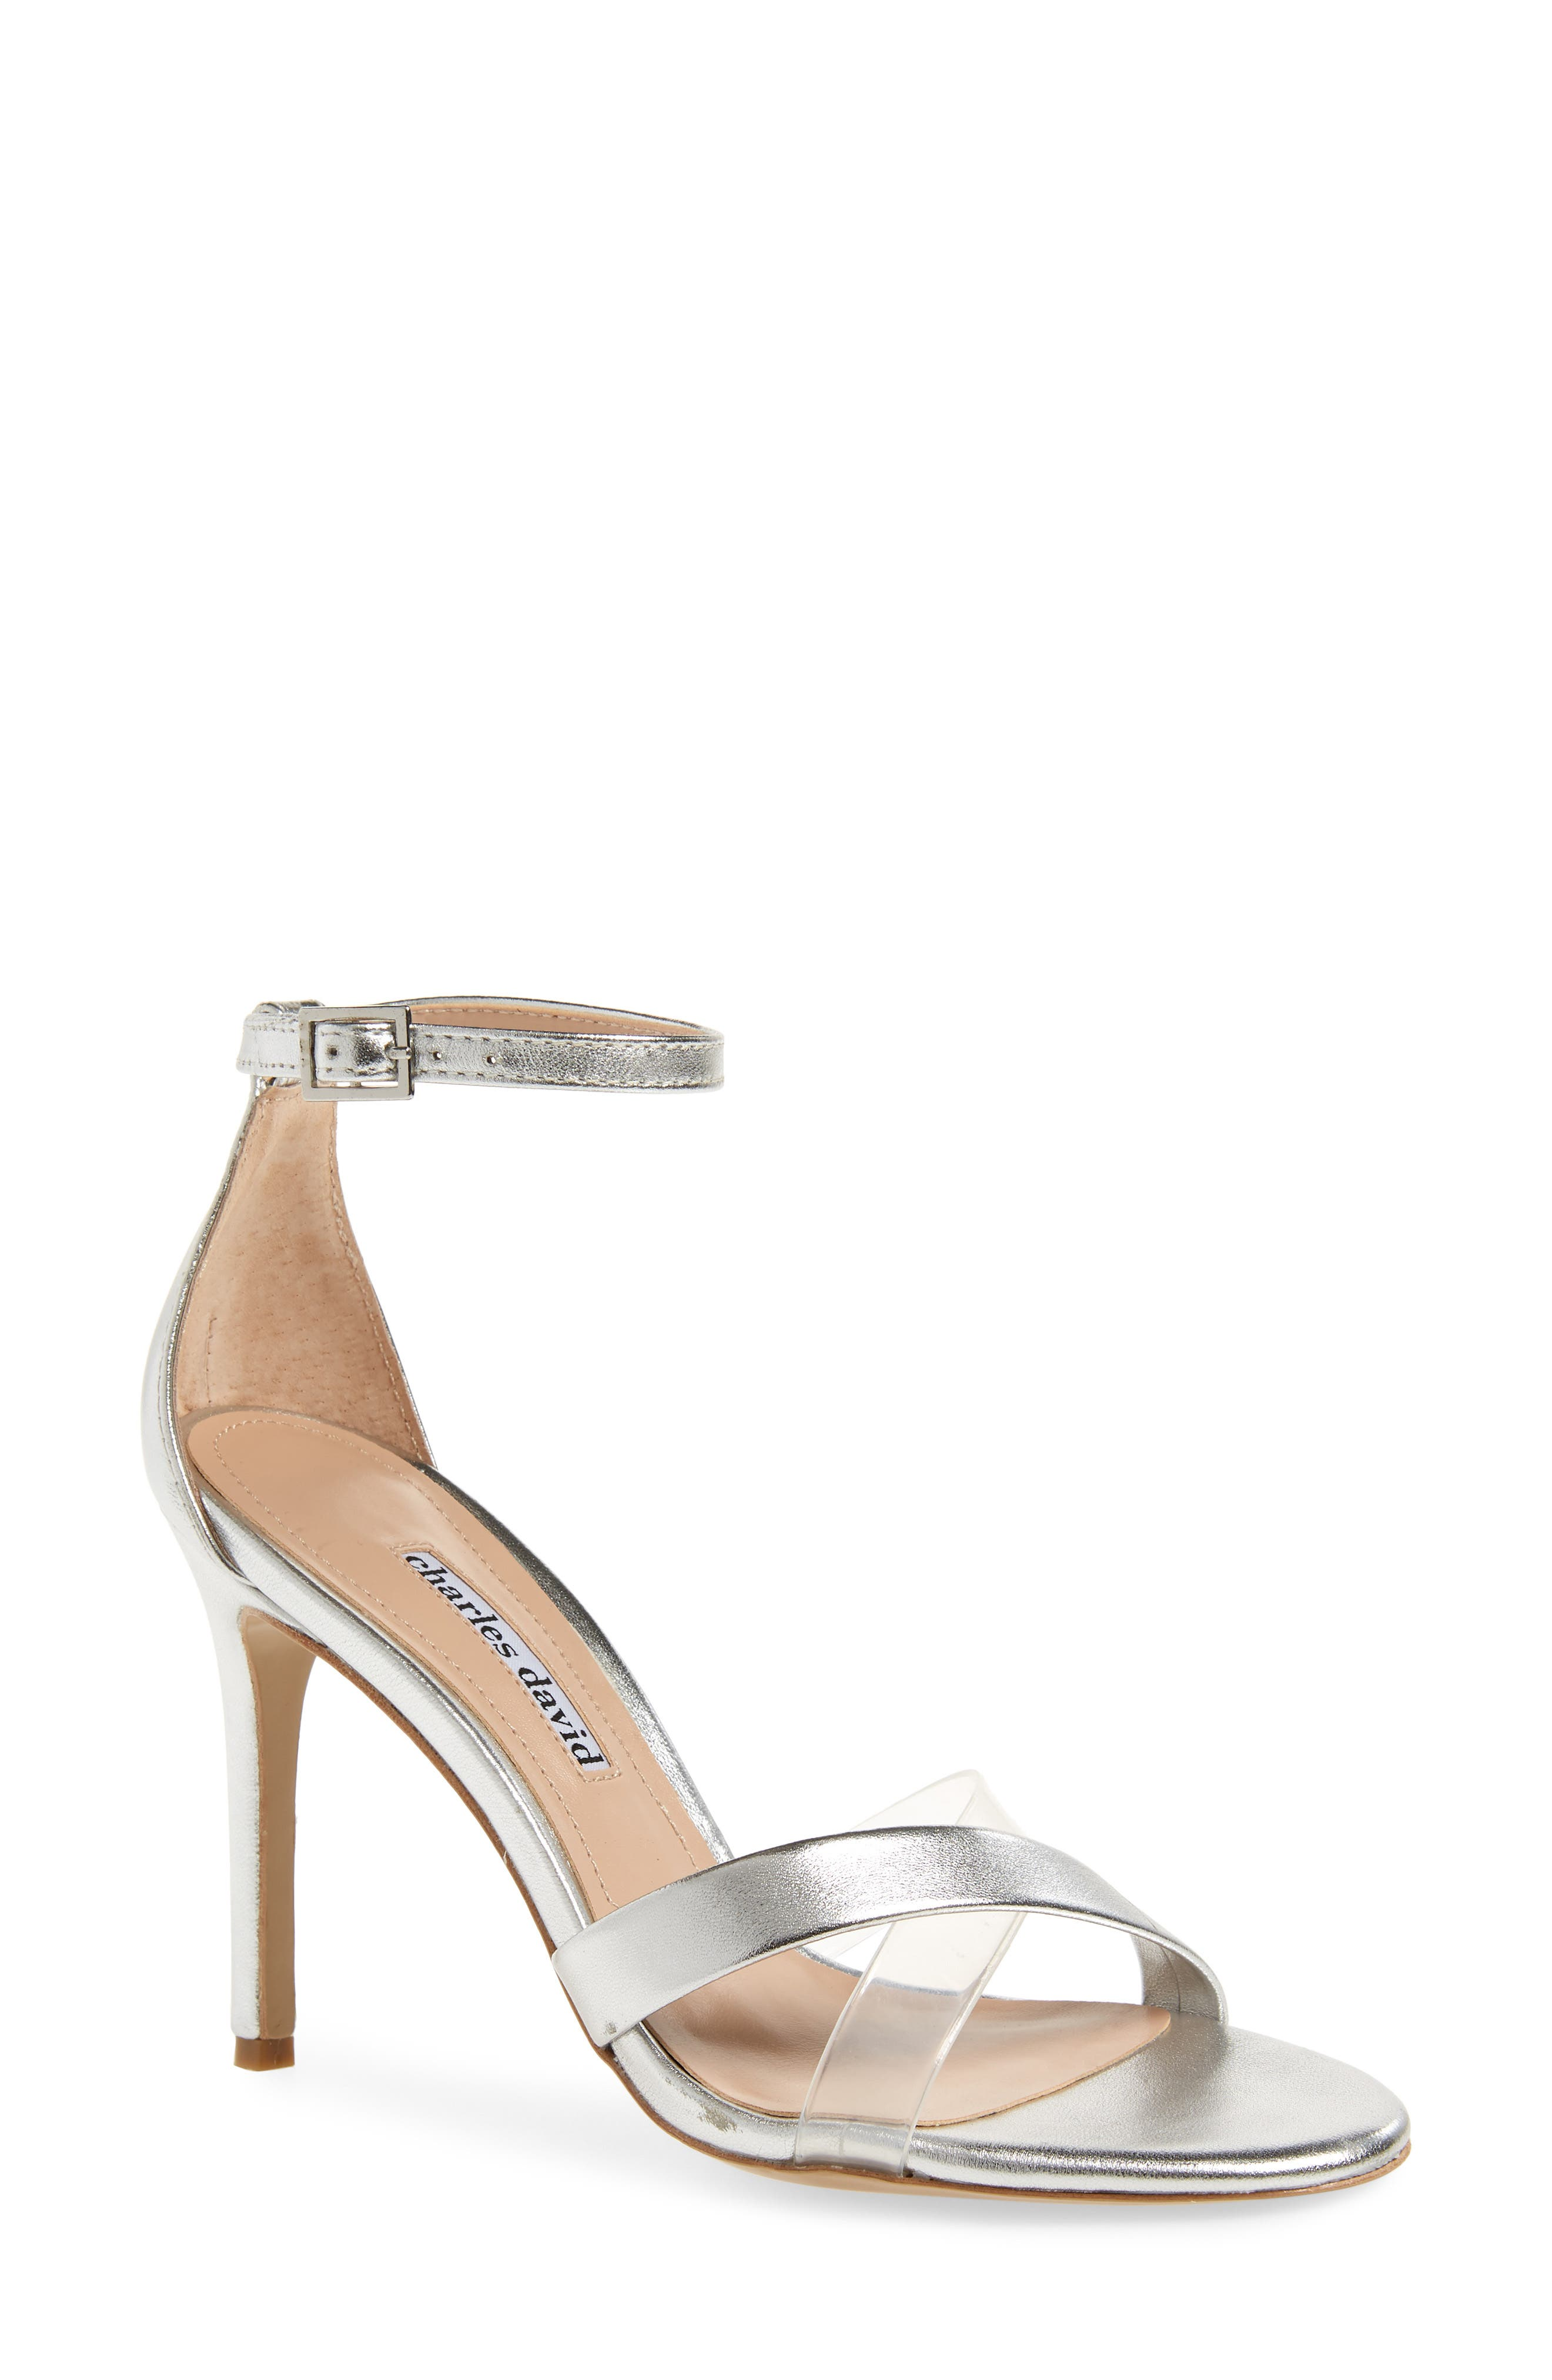 CHARLES DAVID Women'S Courtney Translucent High-Heel Sandals in Silver/ Clear Leather